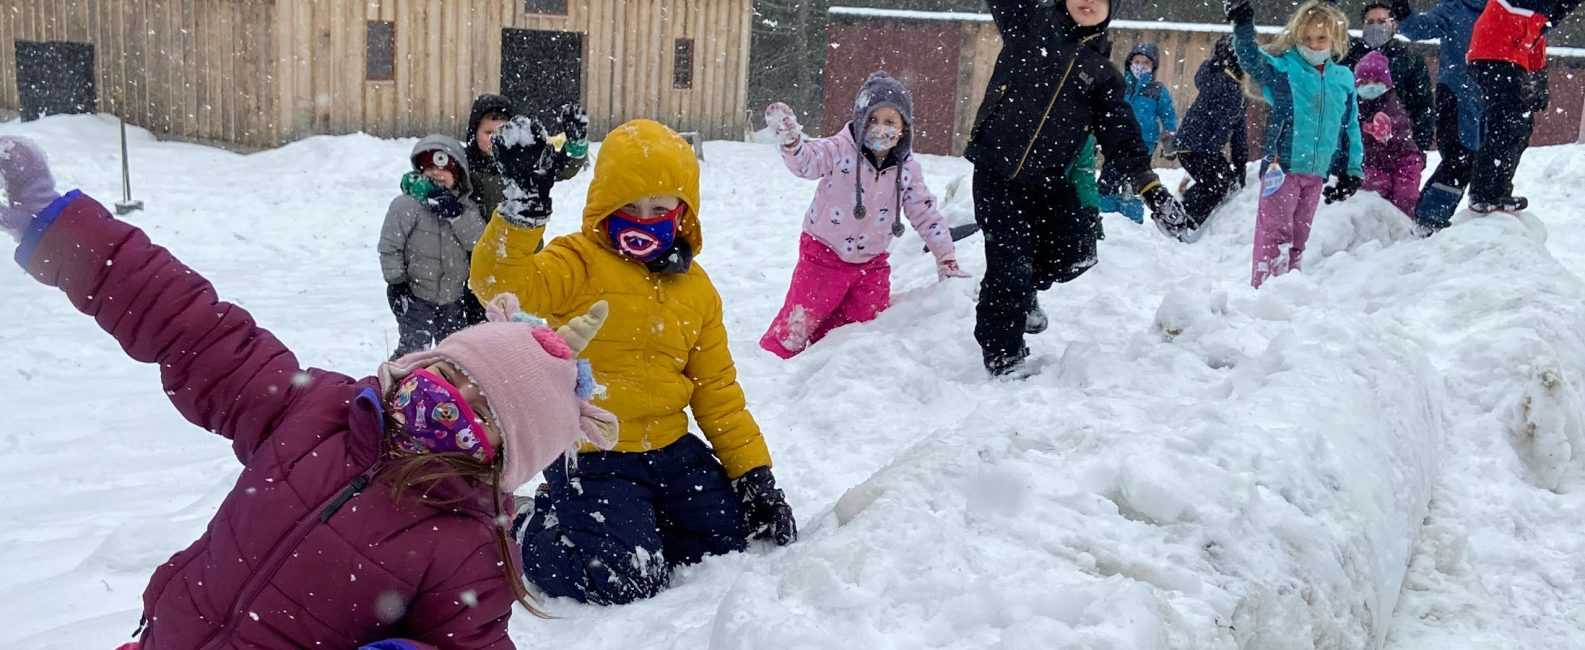 kids having fun in the snow at stonewall farm.